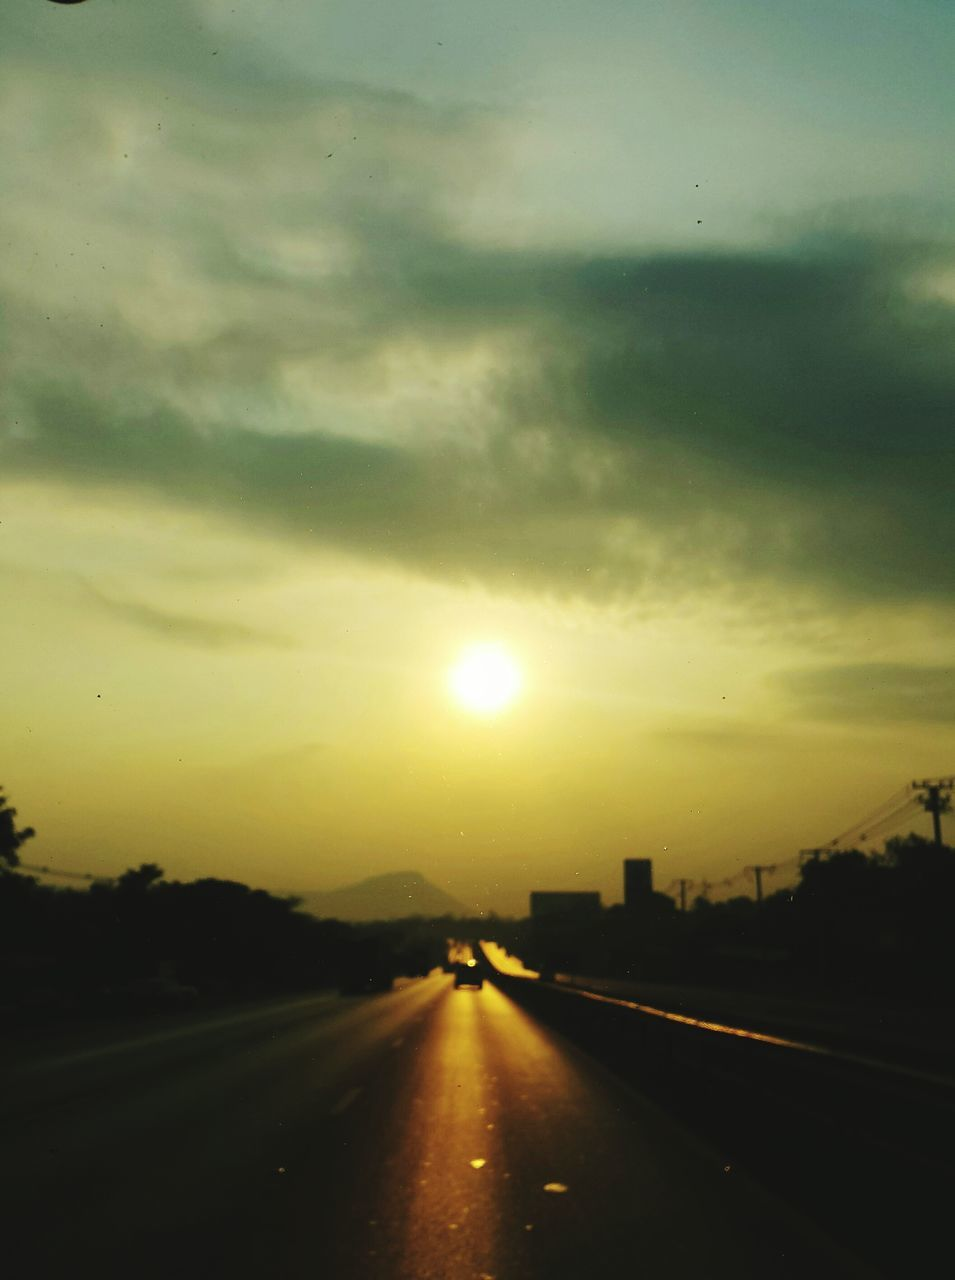 sunset, road, transportation, sky, sun, the way forward, car, no people, nature, drop, cloud - sky, land vehicle, outdoors, scenics, beauty in nature, tree, day